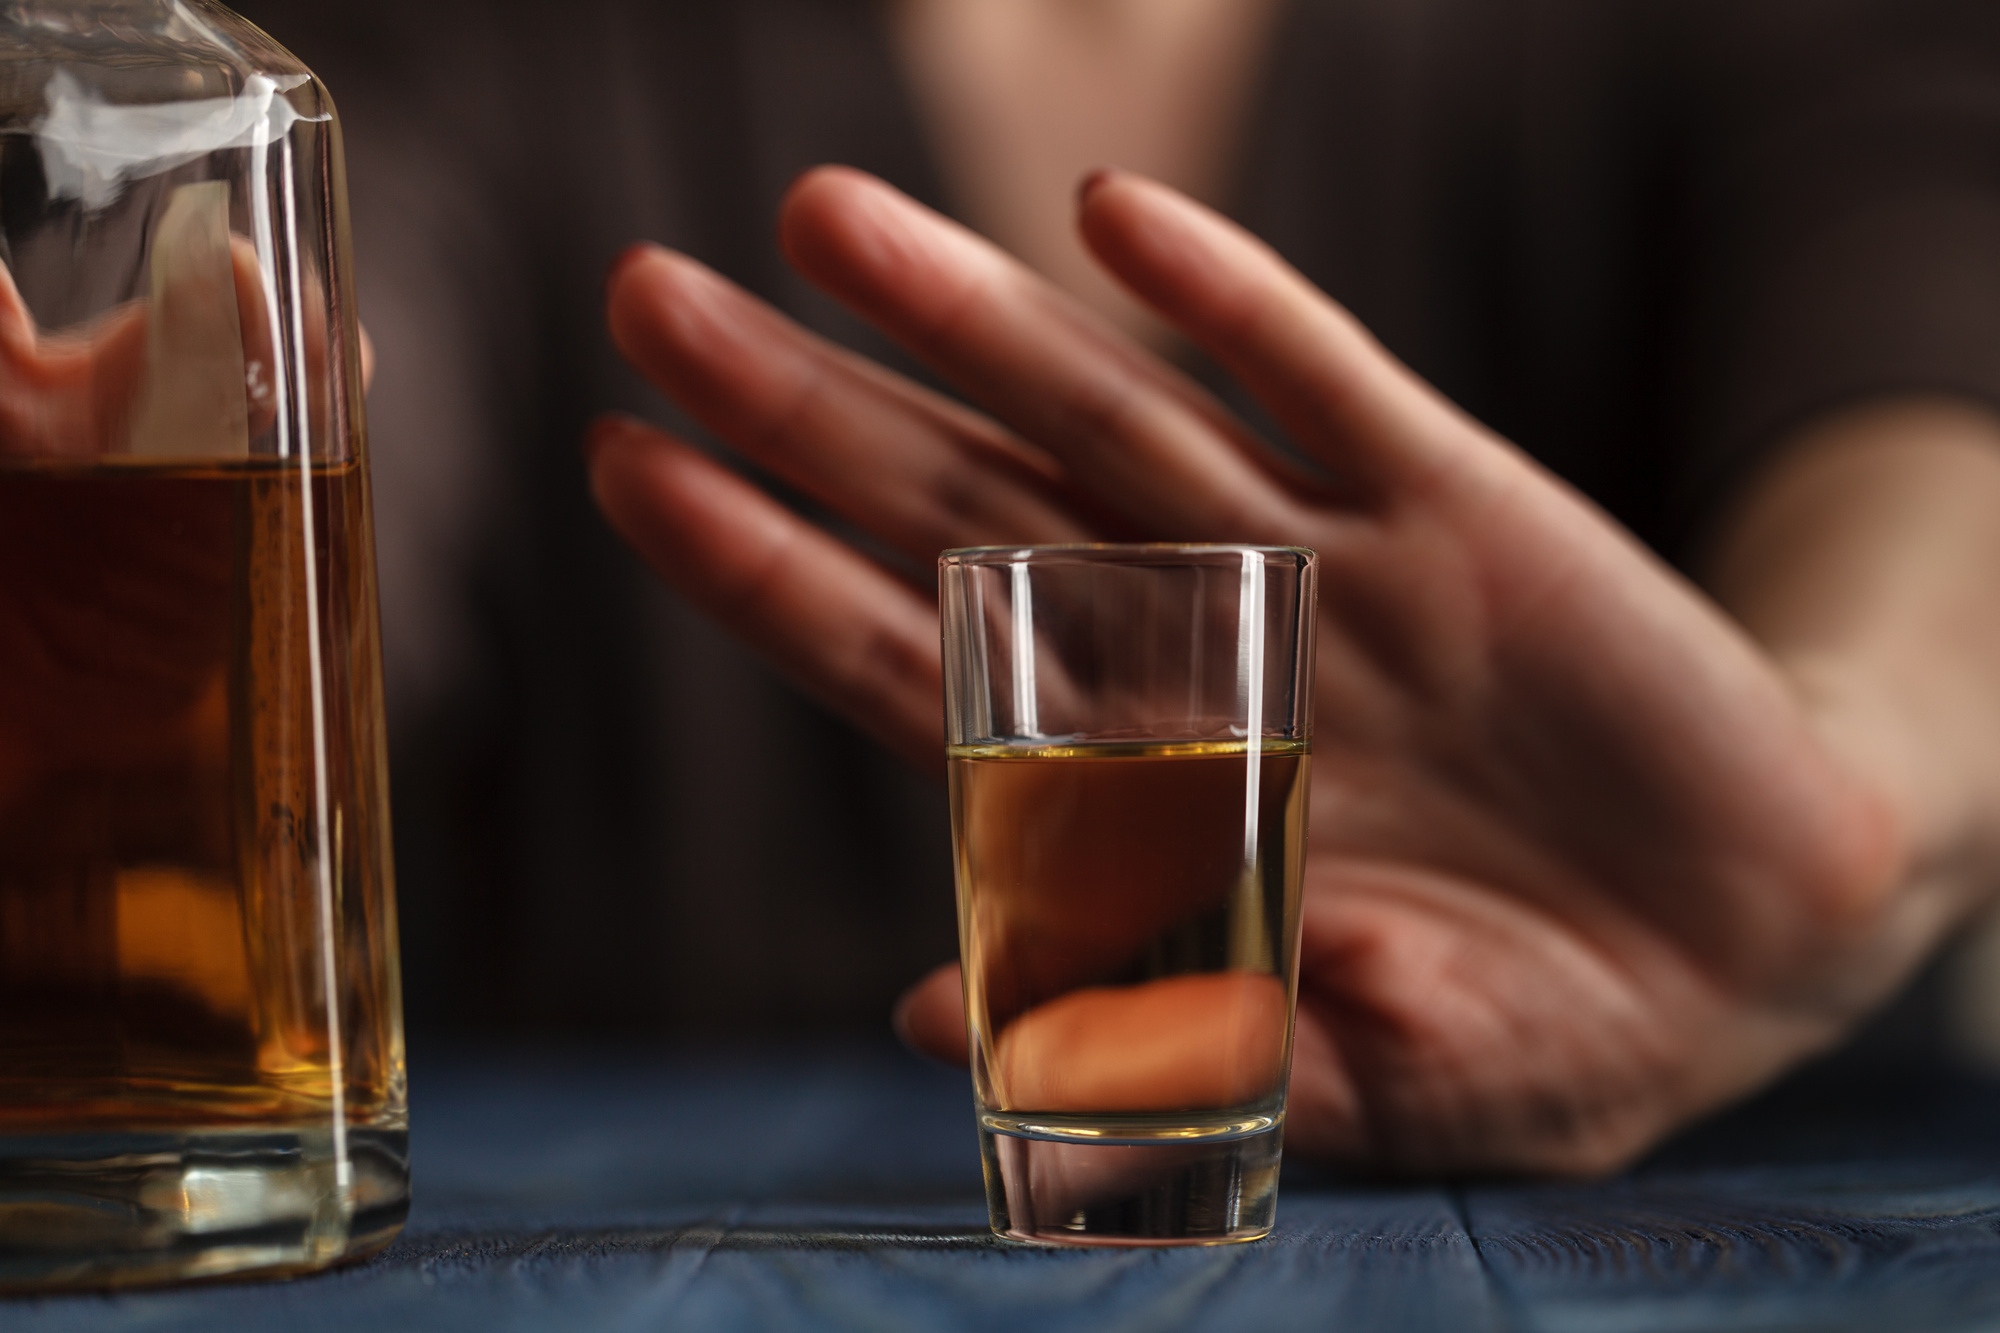 5 Tips to Help Reduce Alcohol Cravings